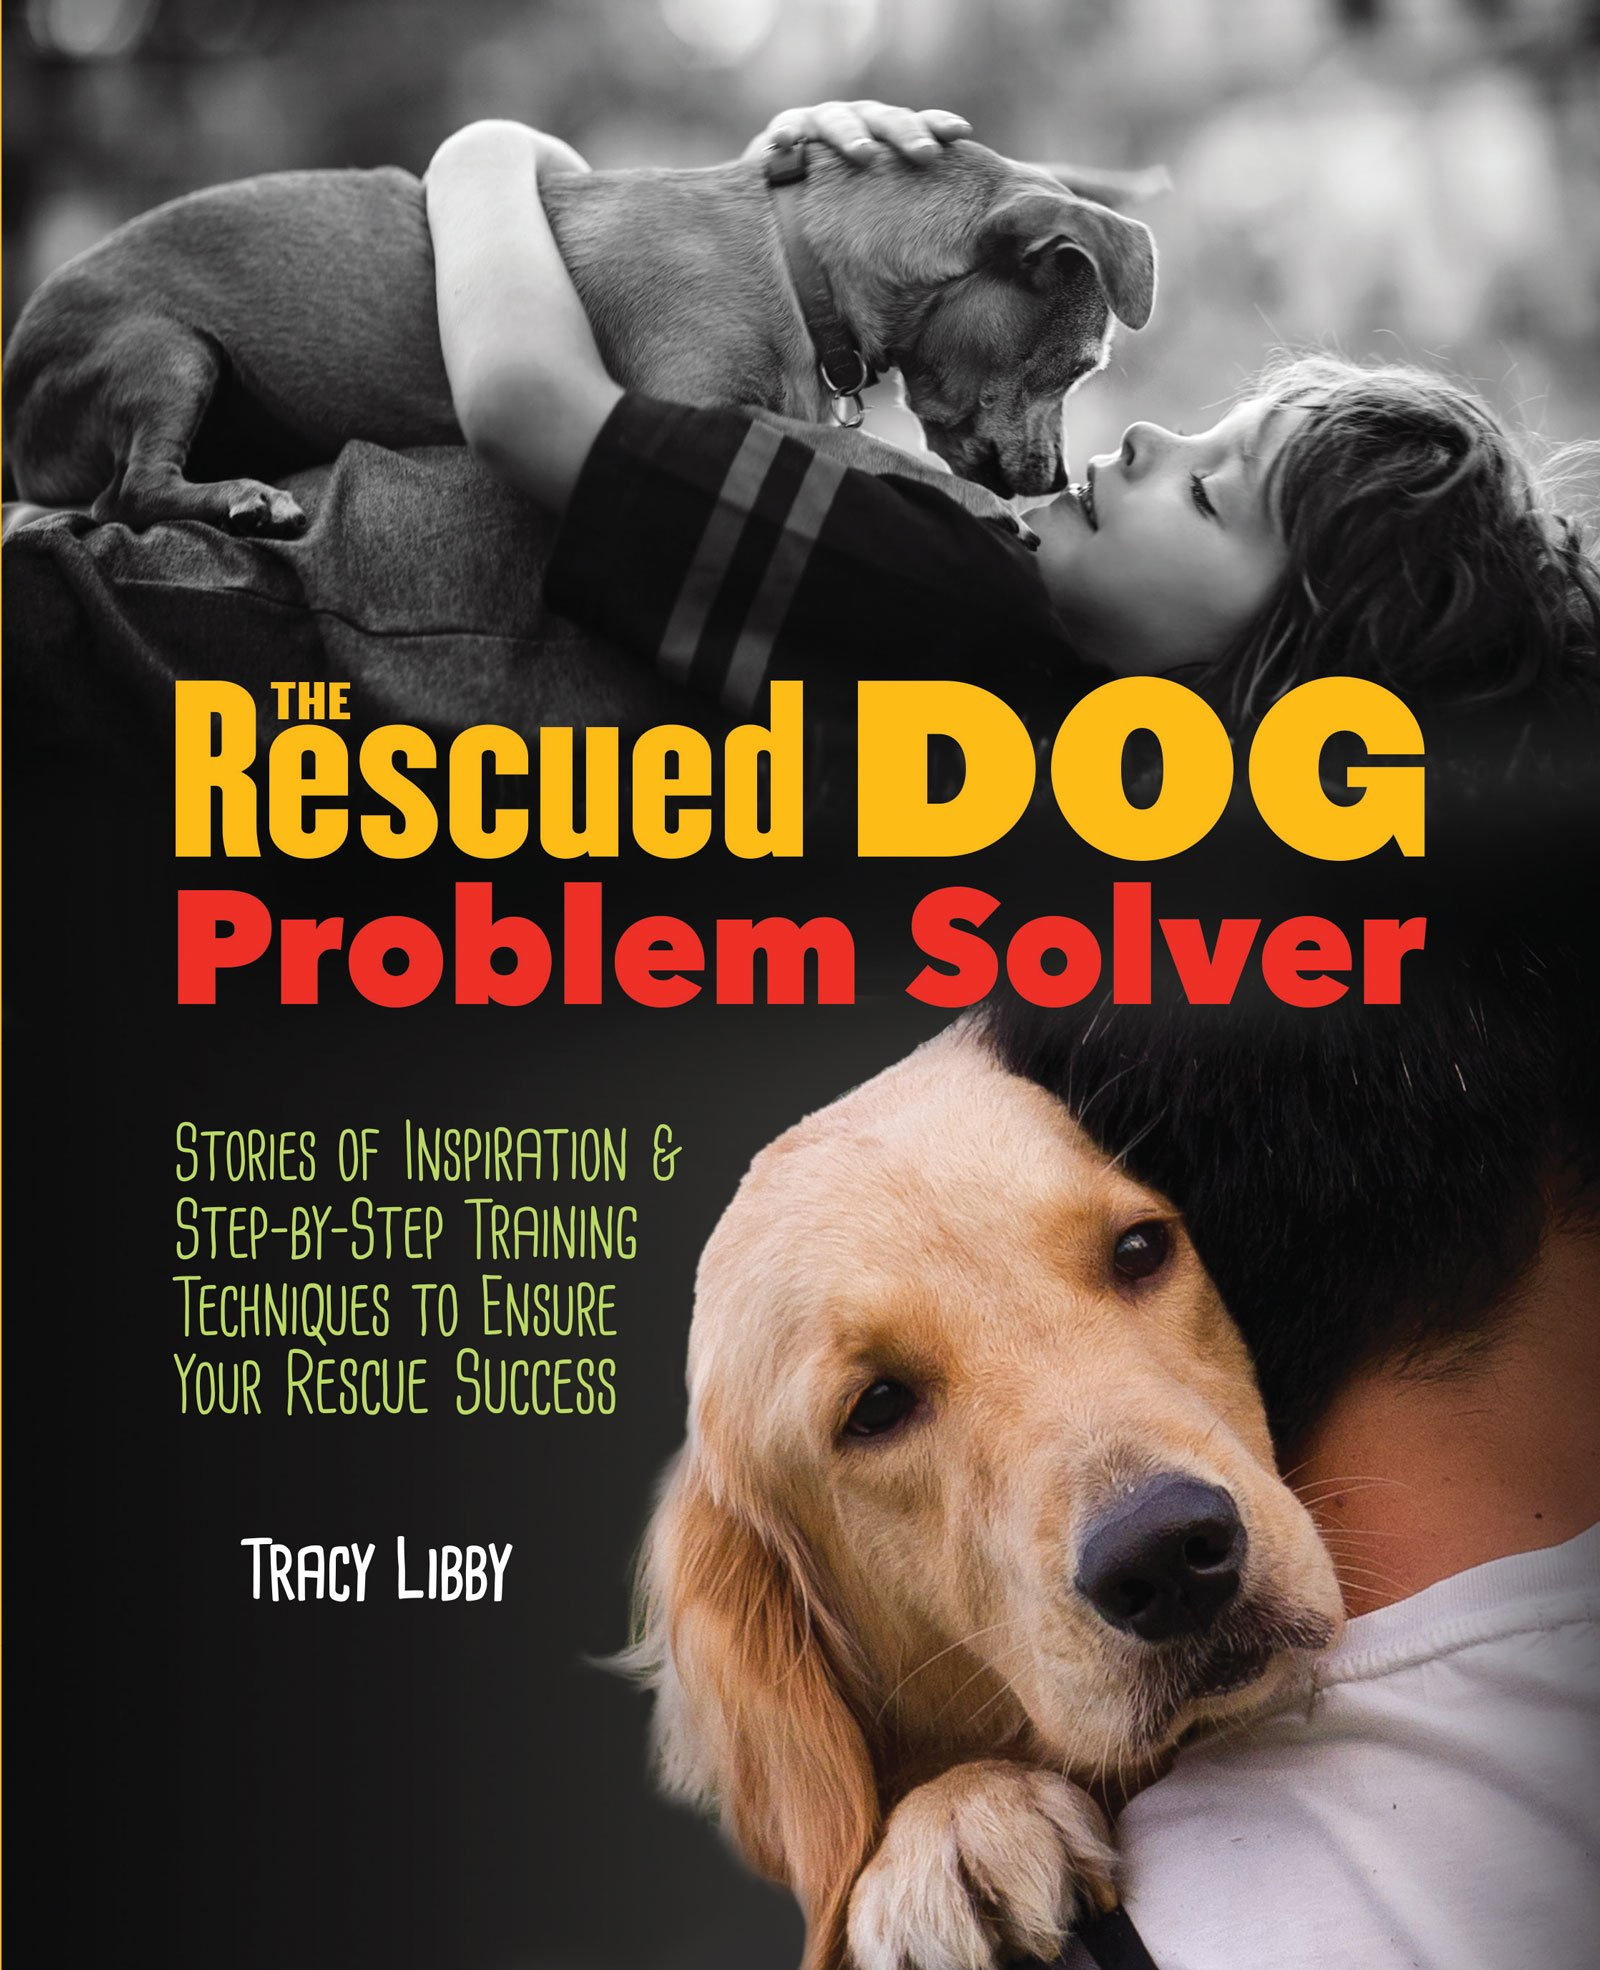 the rescued dog problem solver stories of inspiration and step by the rescued dog problem solver stories of inspiration and step by step training techniques to ensure your rescue success tracy j libby 9781620081396